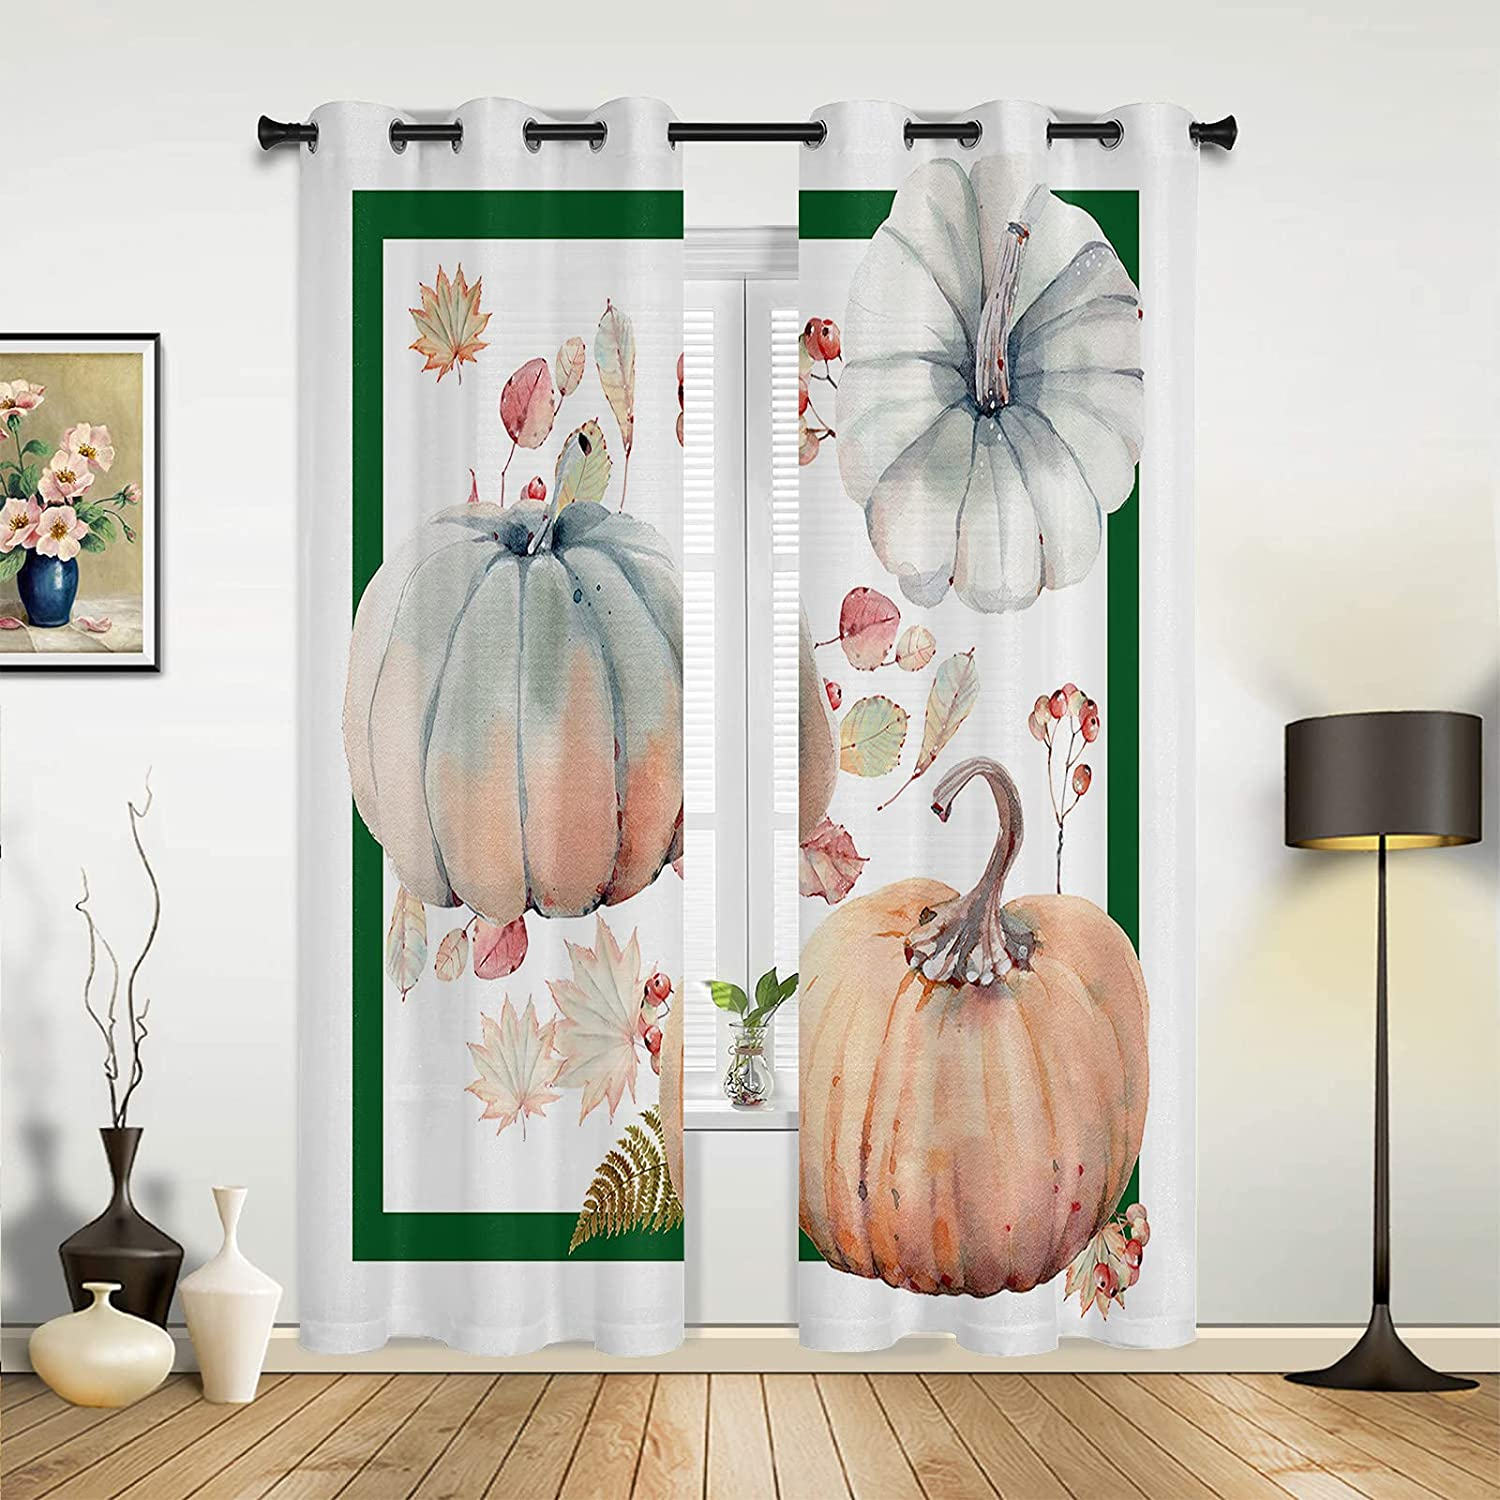 Window Sheer Curtains for Dealing full price reduction Bedroom Room Thanksgiving Living San Francisco Mall Happy